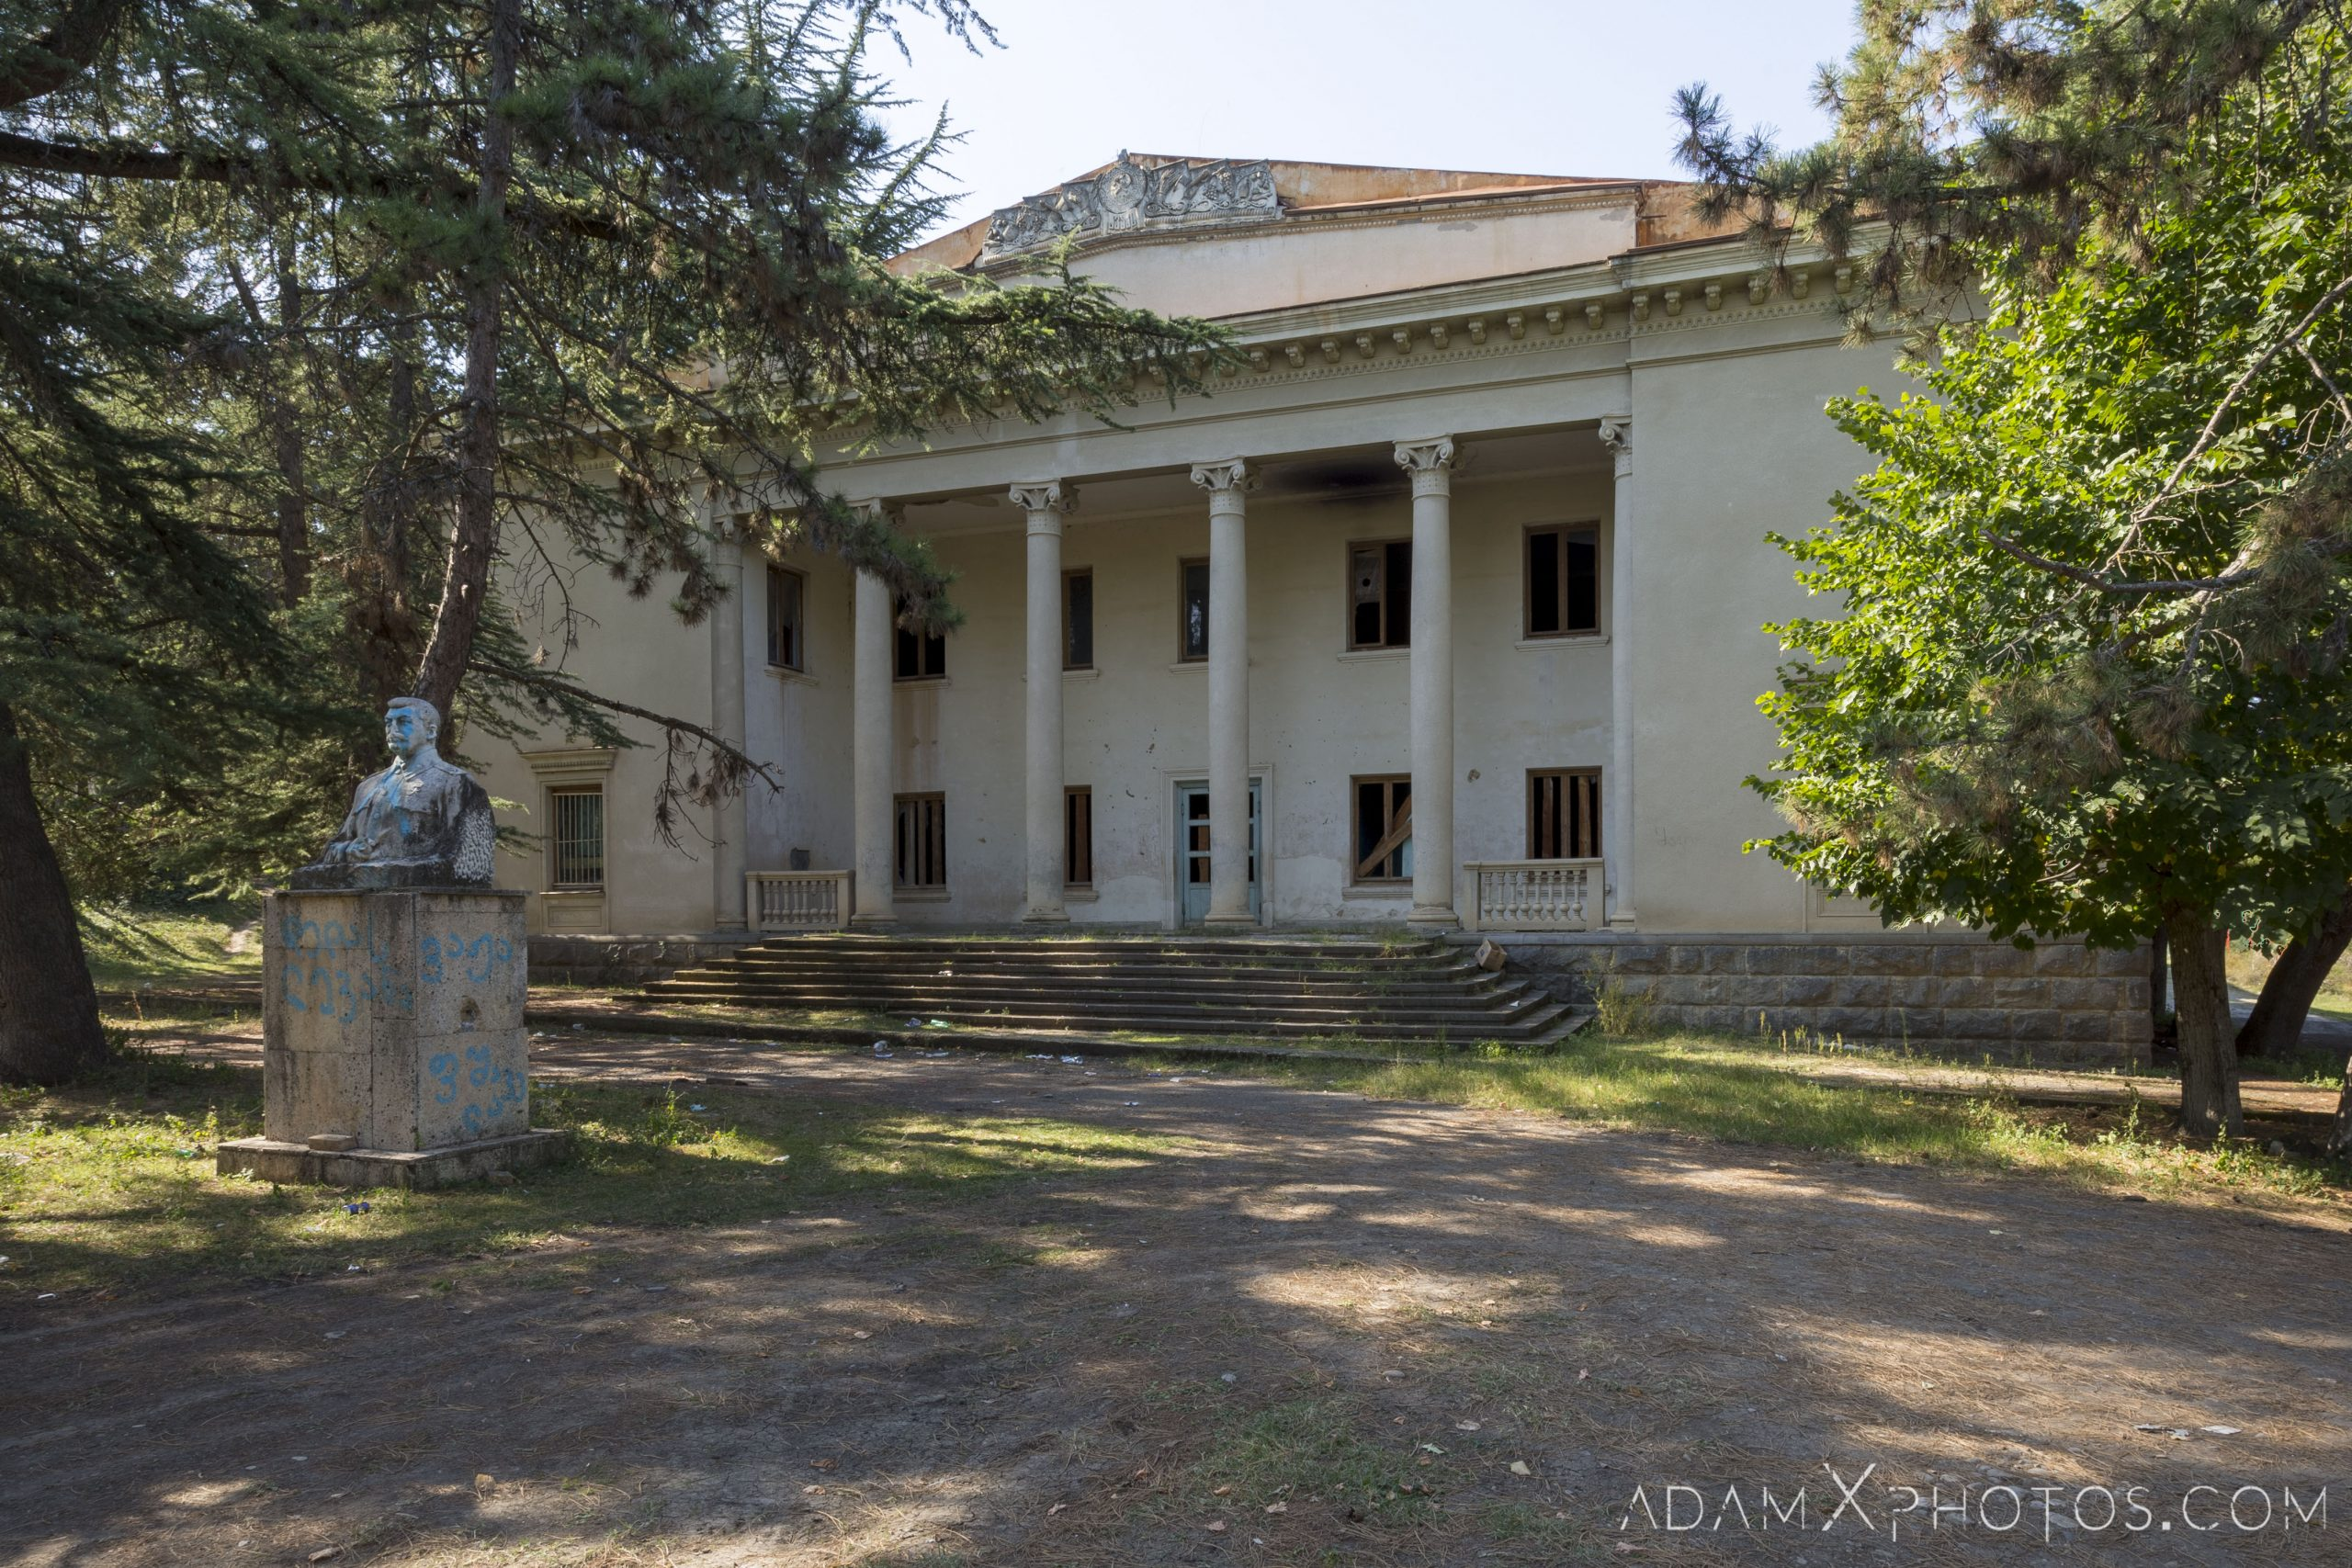 Front outside exterior external statue defaced House of Culture Palace Blue rural Soviet era Georgia Adam X AdamXPhotos Urbex Urban Exploration 2018 Abandoned Access History decay ruins lost forgotten derelict location creepy haunting eerie security